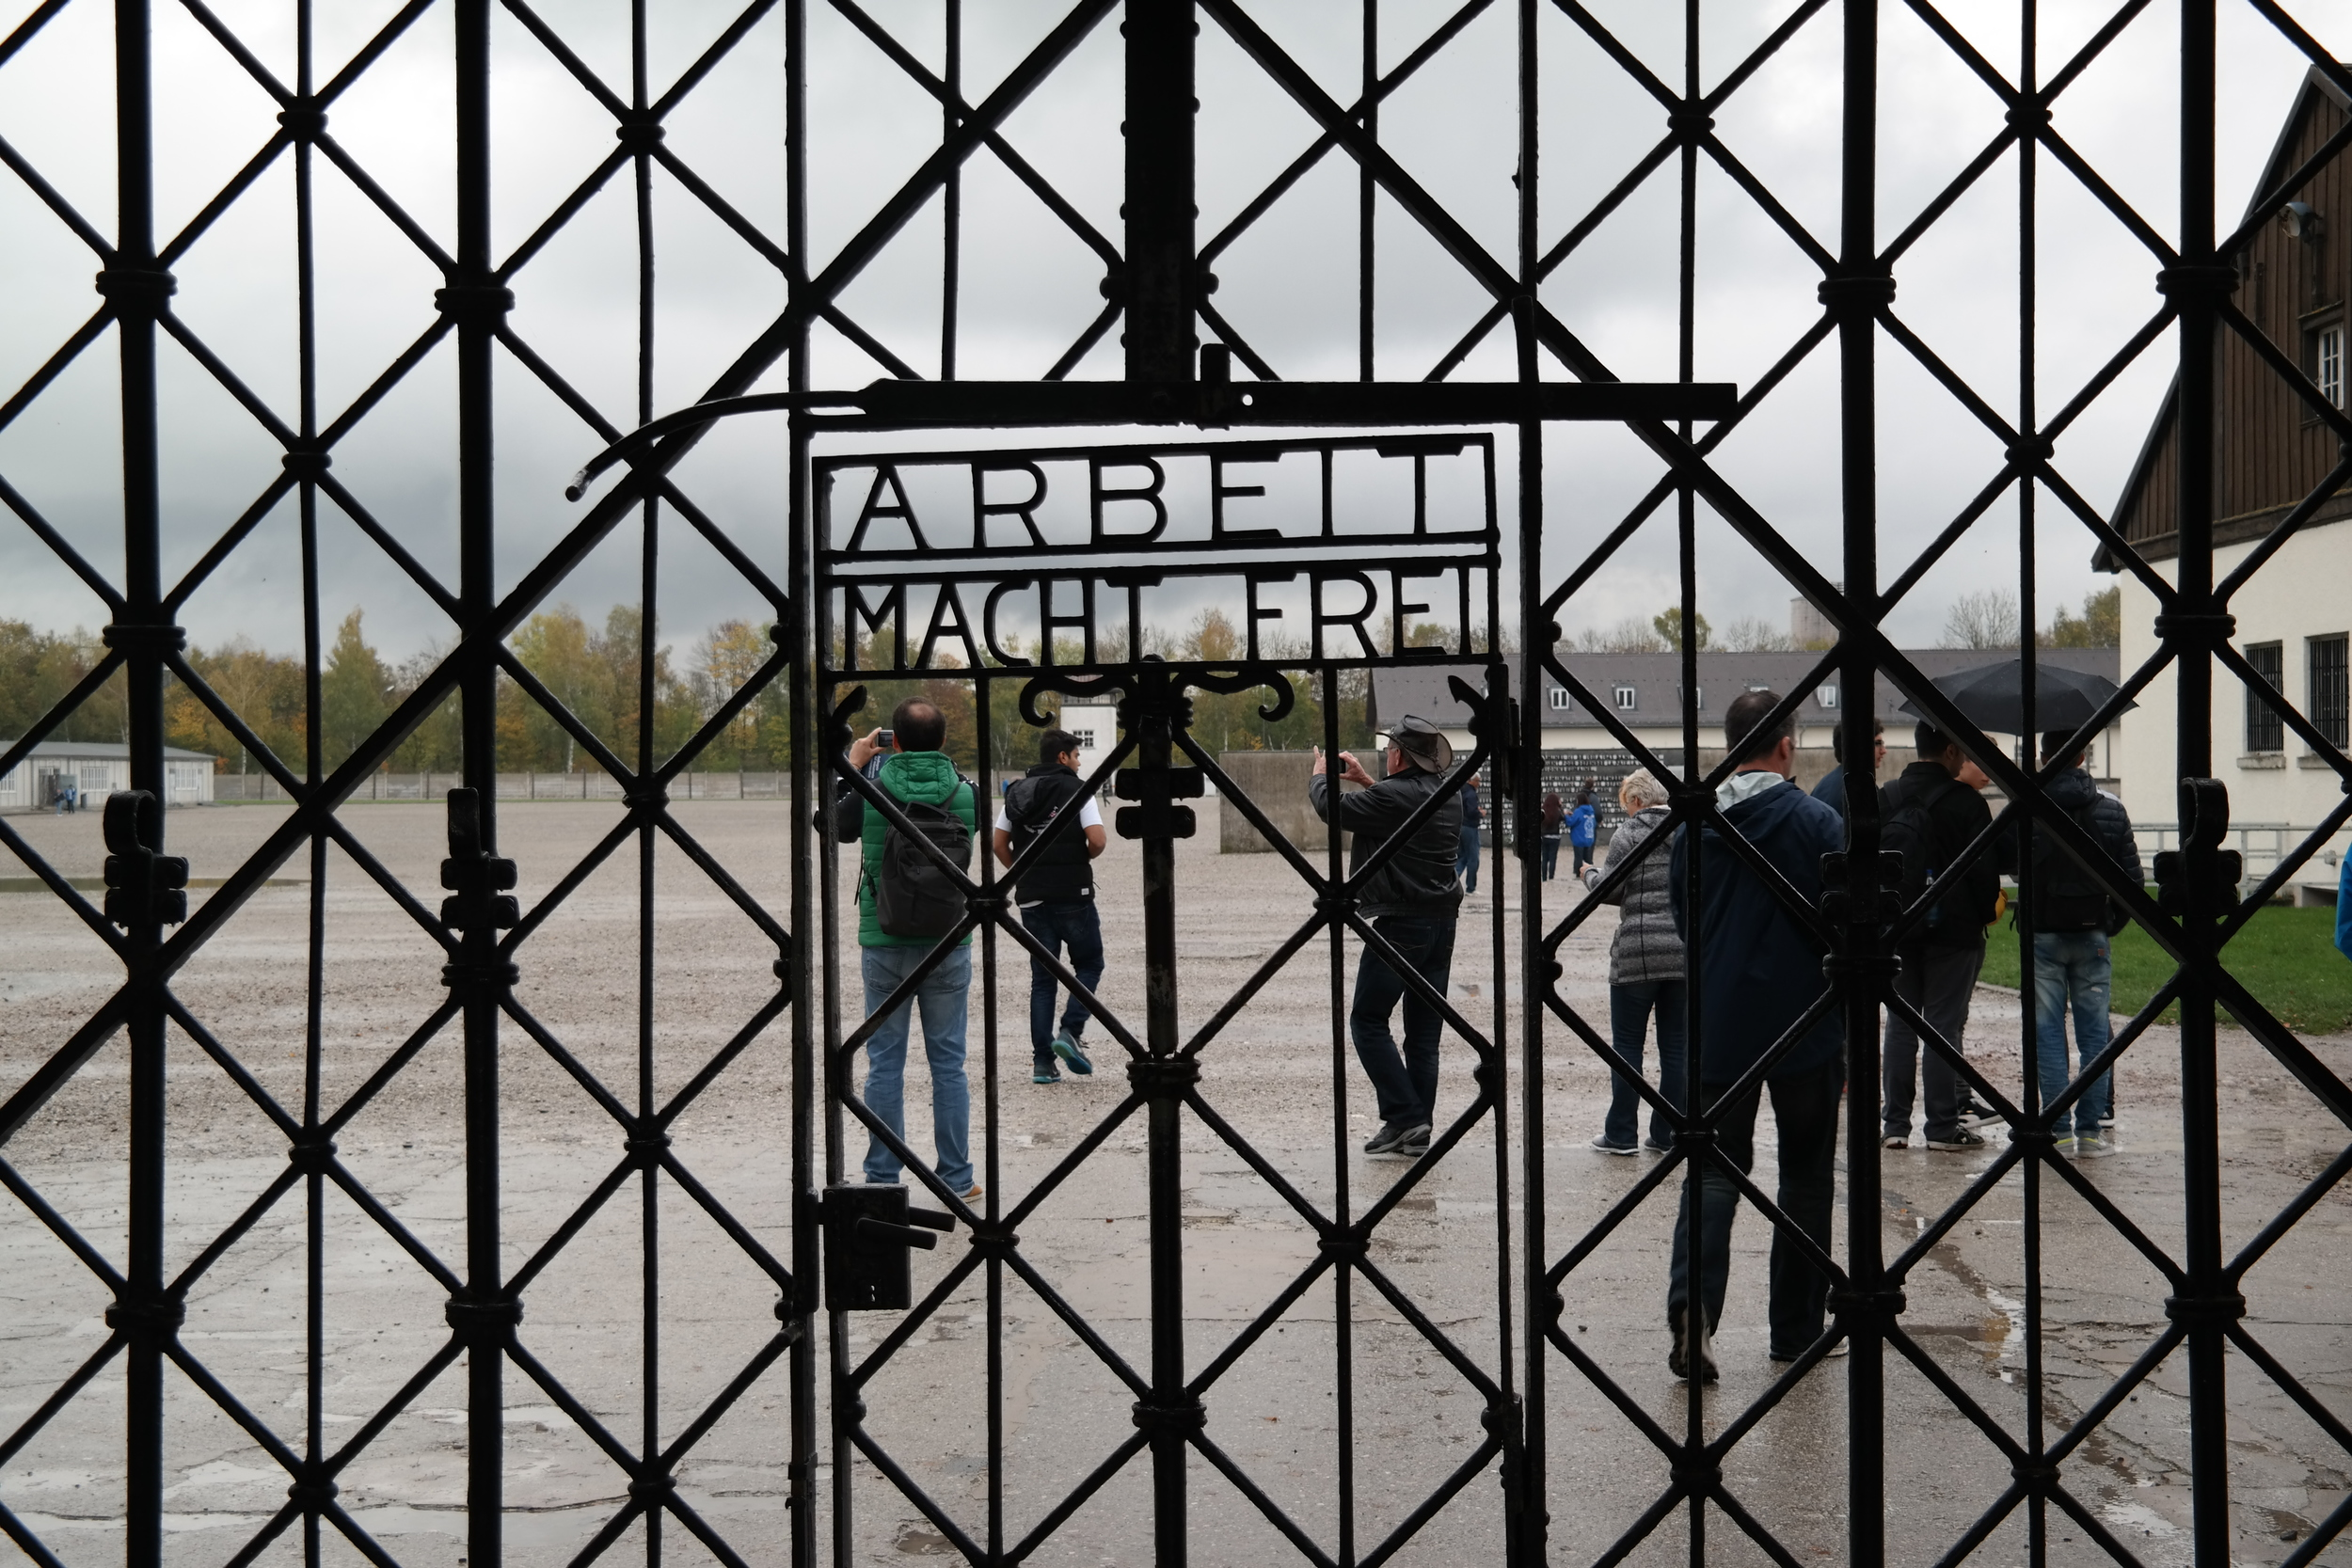 """Work Makes You Free:"" text on the gate entering into the Dachau concentration camp."